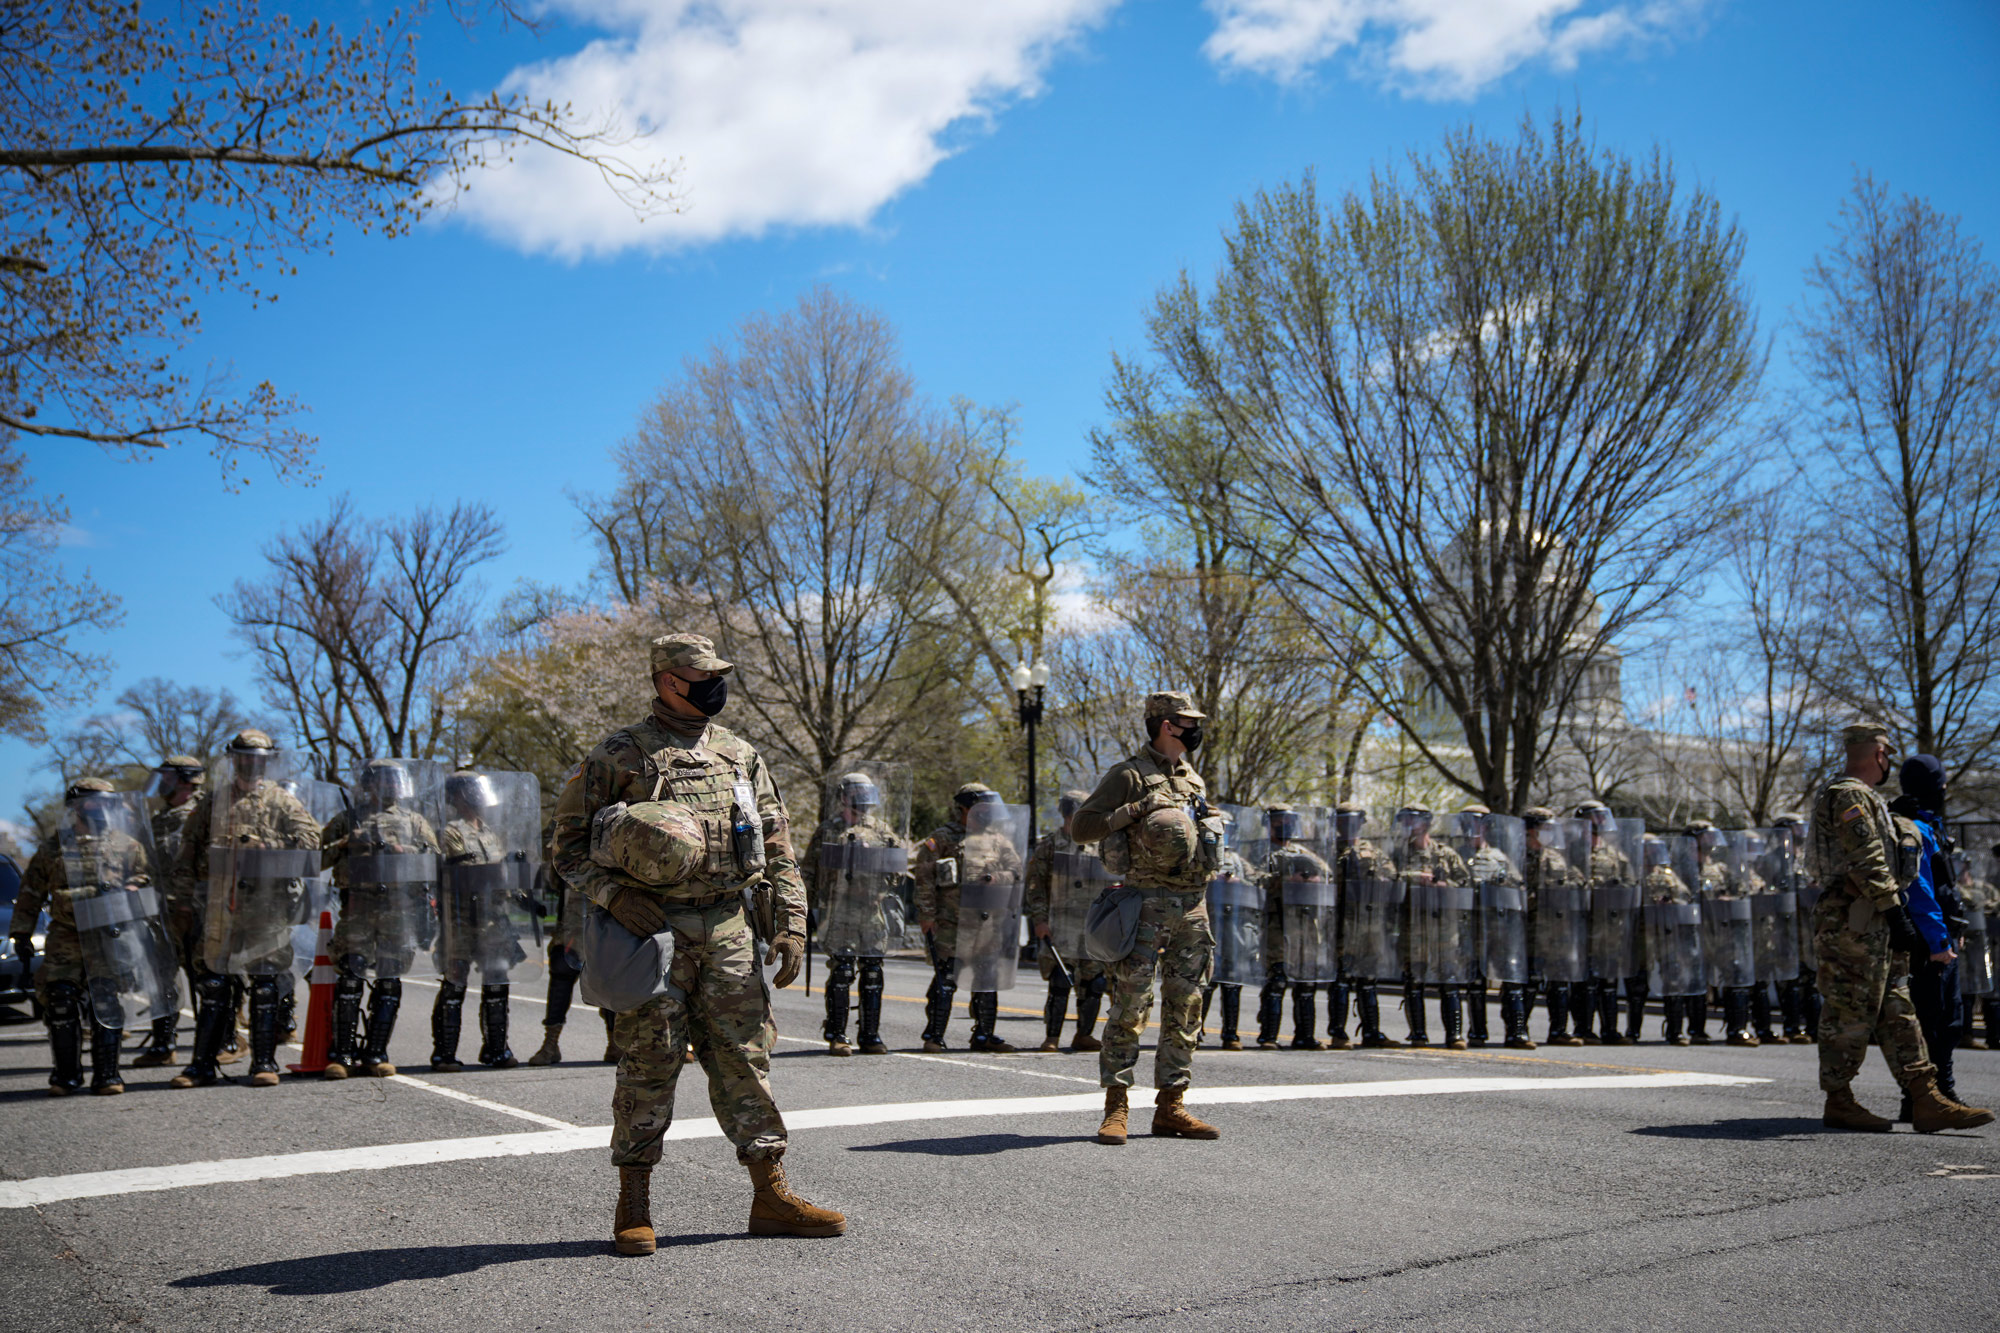 National Guard troops stand guard along Constitution Avenue as law enforcement responds to a security incident near the U.S. Capitol on April 2 in Washington, DC.